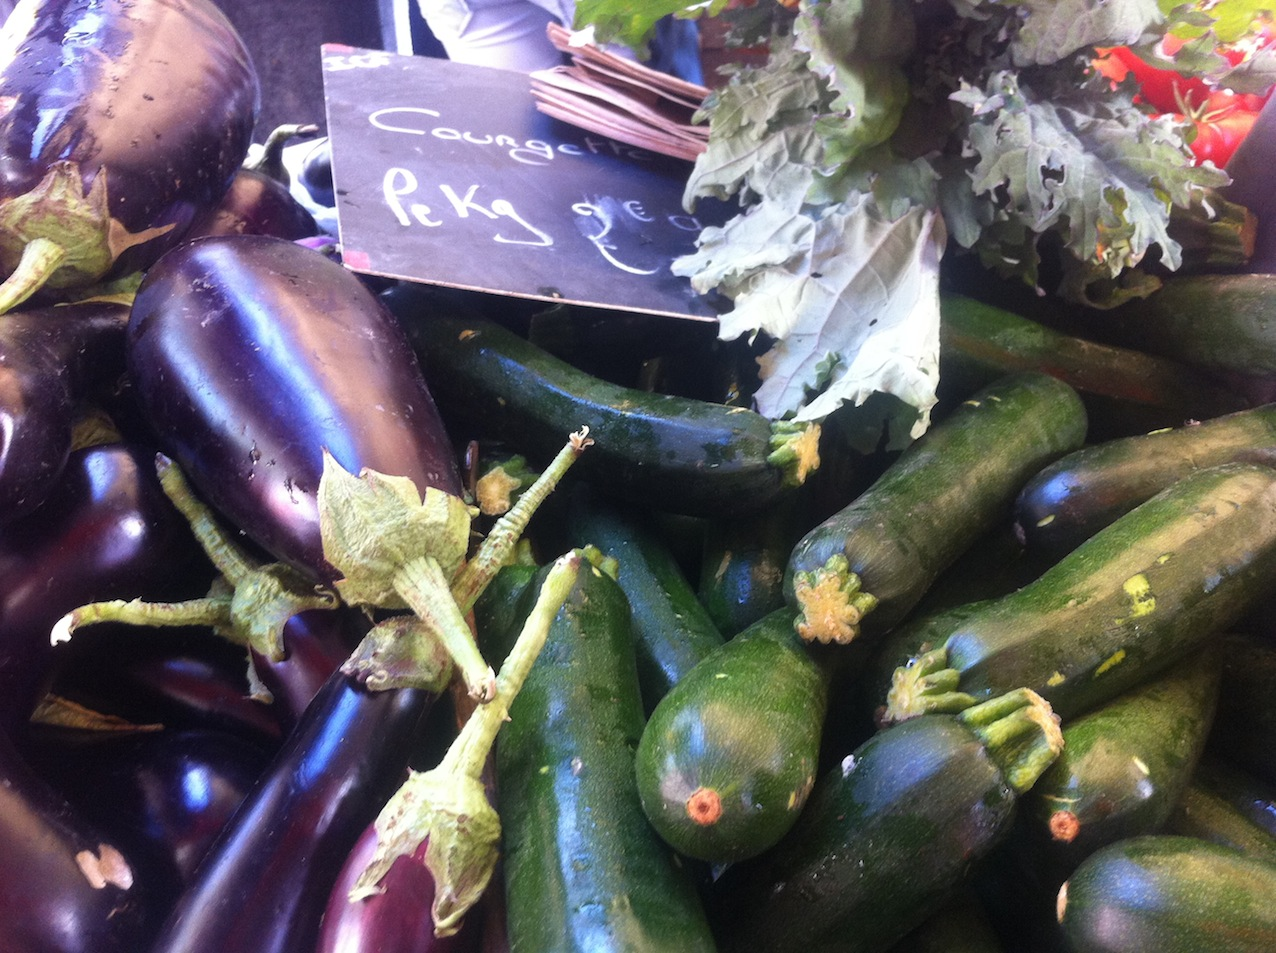 Eggplant, zucchini, and kale at Jean-Michel's stand, Marché Ornano 75018